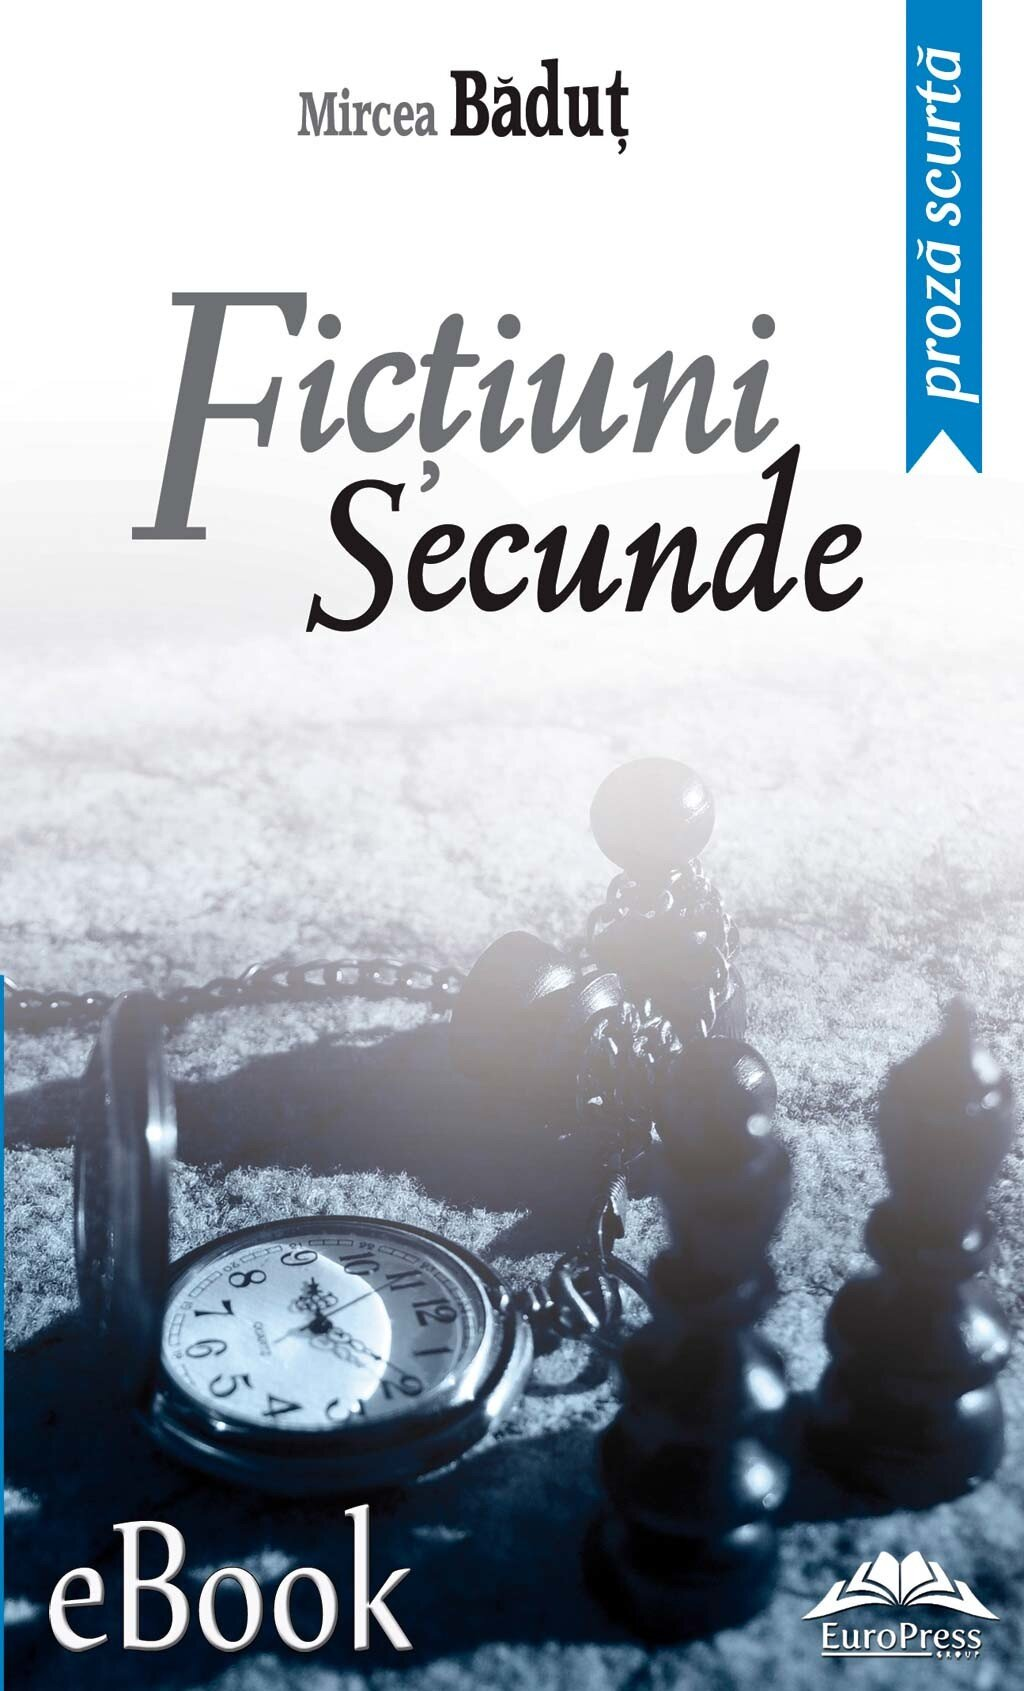 Fictiuni secunde (eBook)